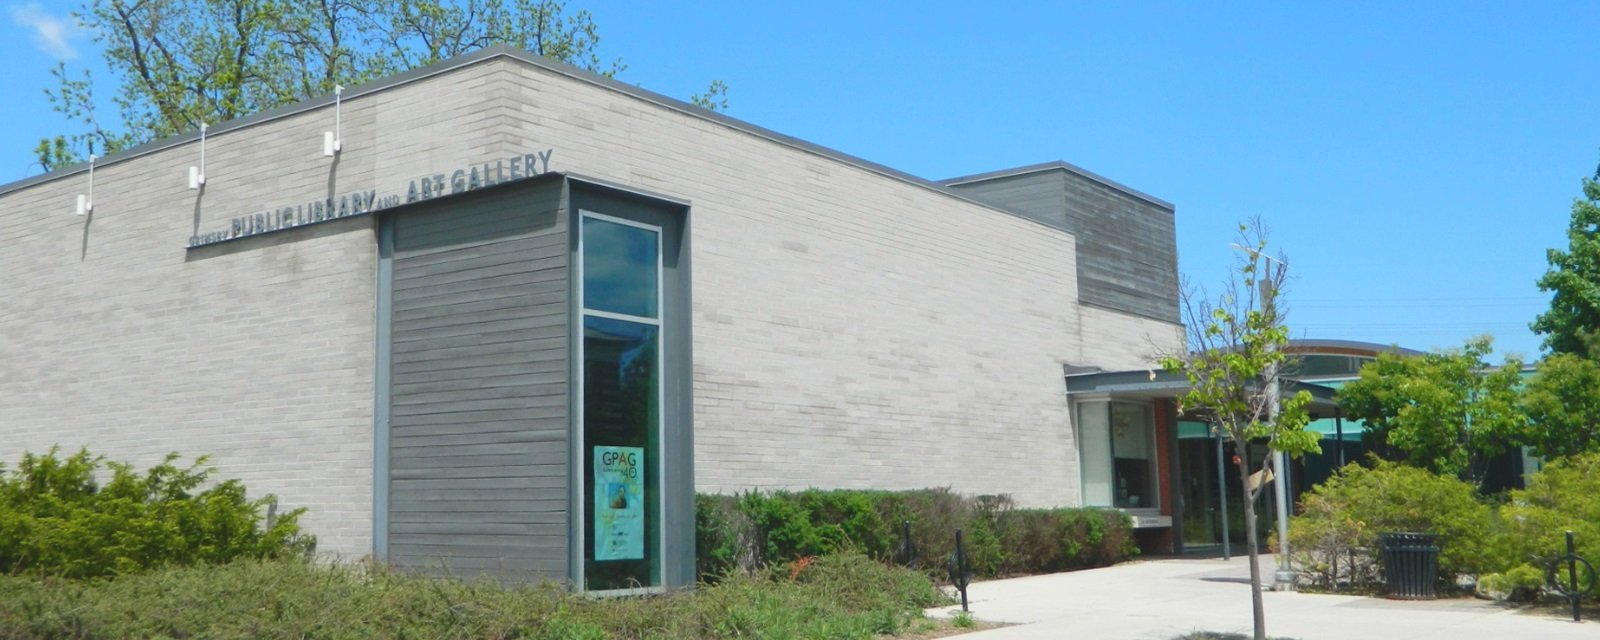 Grimsby Public Library